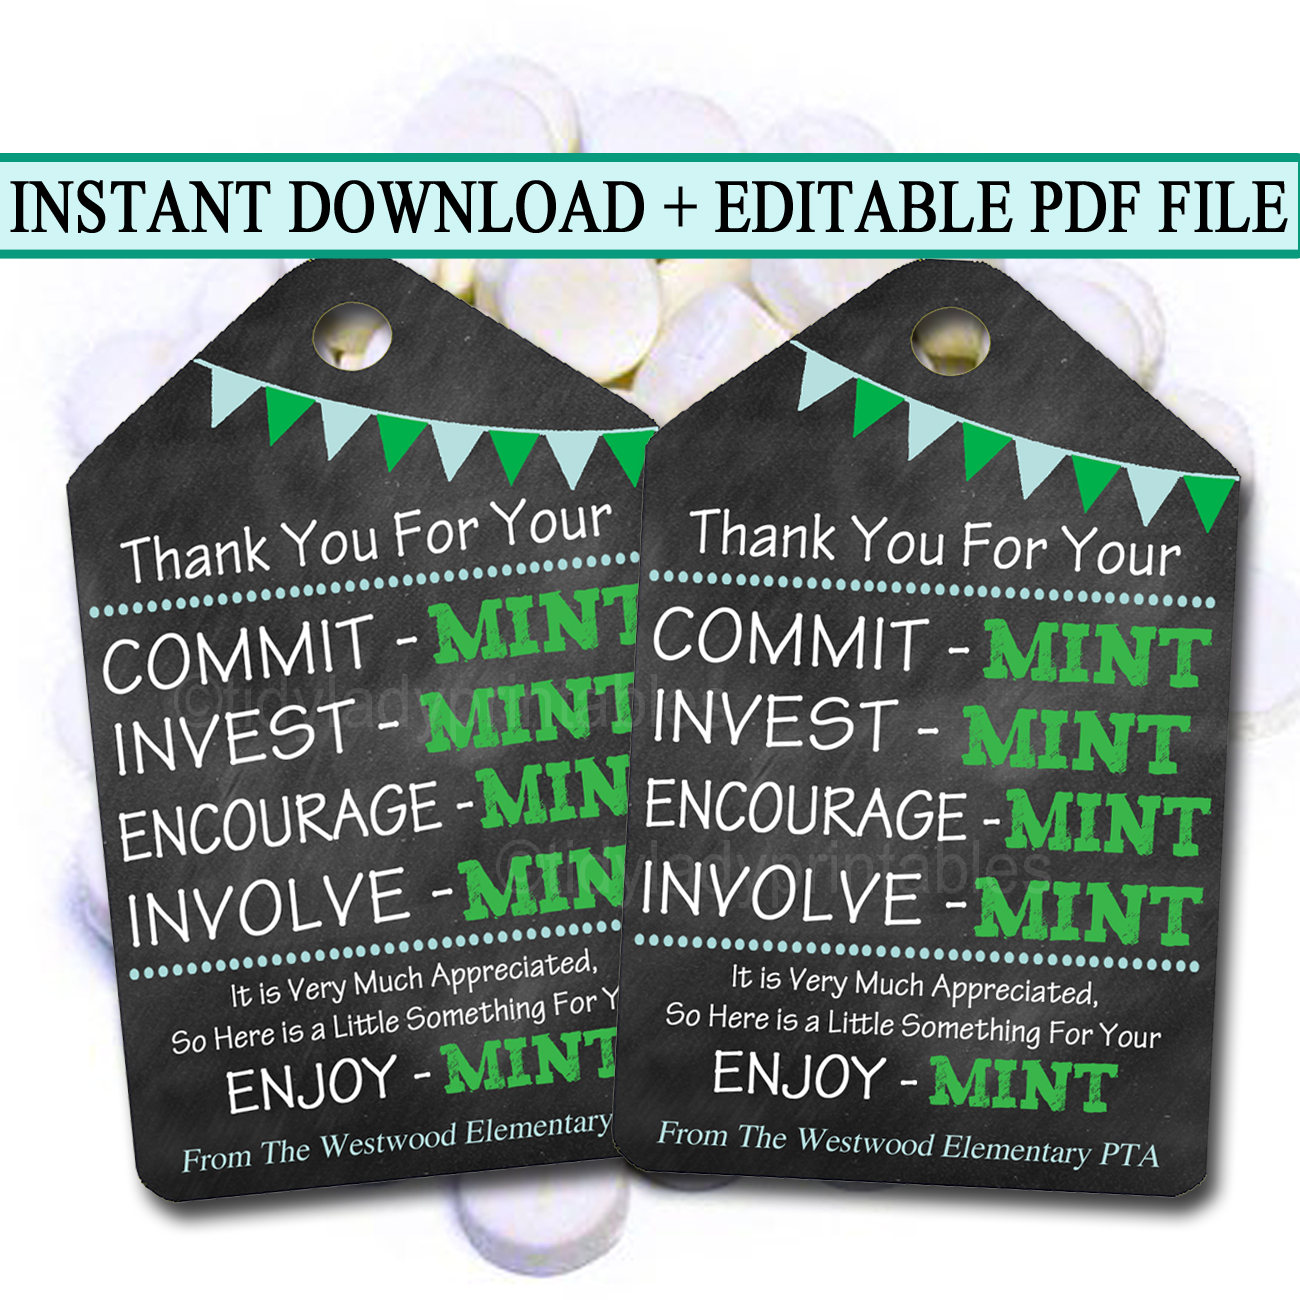 photograph relating to Thank You for Your Commit Mint Printable named Printable Thank On your own Tags, Volunteer Mint Labels, Printable, Prompt + EDITABLE, Thank Your self Present, PTA Personnel Reward Appreciation Mint Like Label